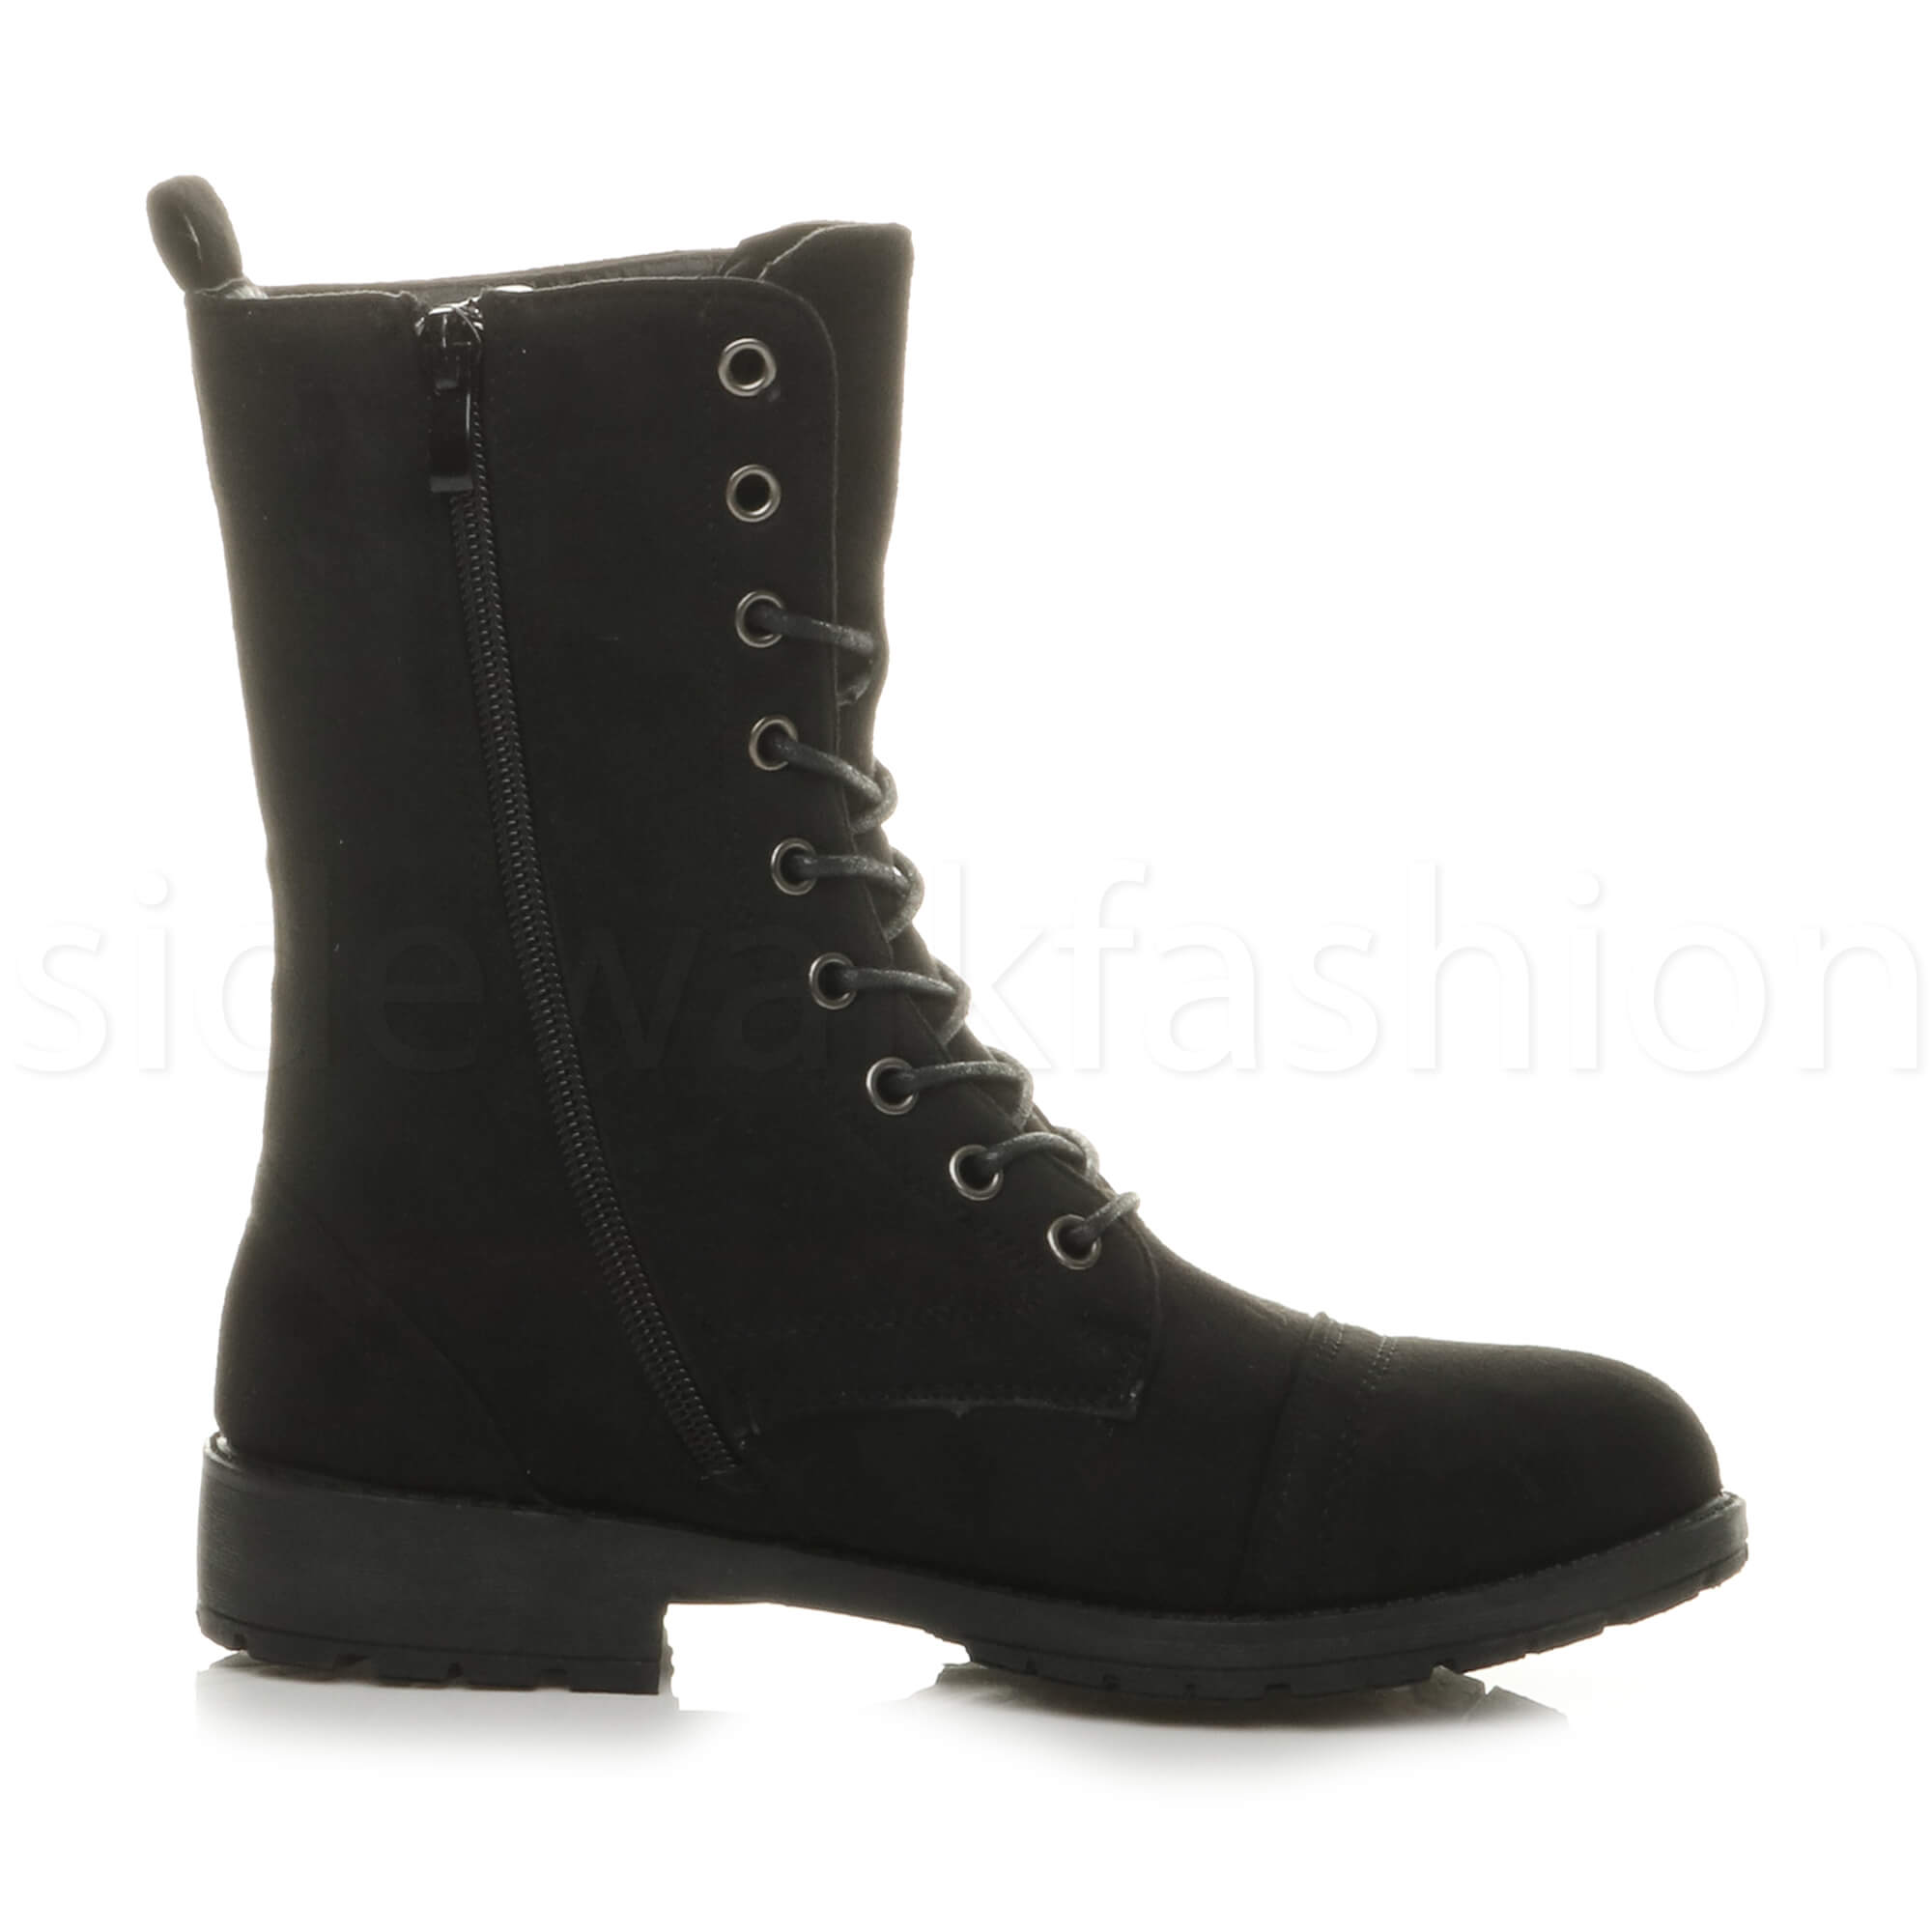 Womens-ladies-low-heel-flat-lace-up-zip-combat-biker-military-ankle-boots-size thumbnail 28